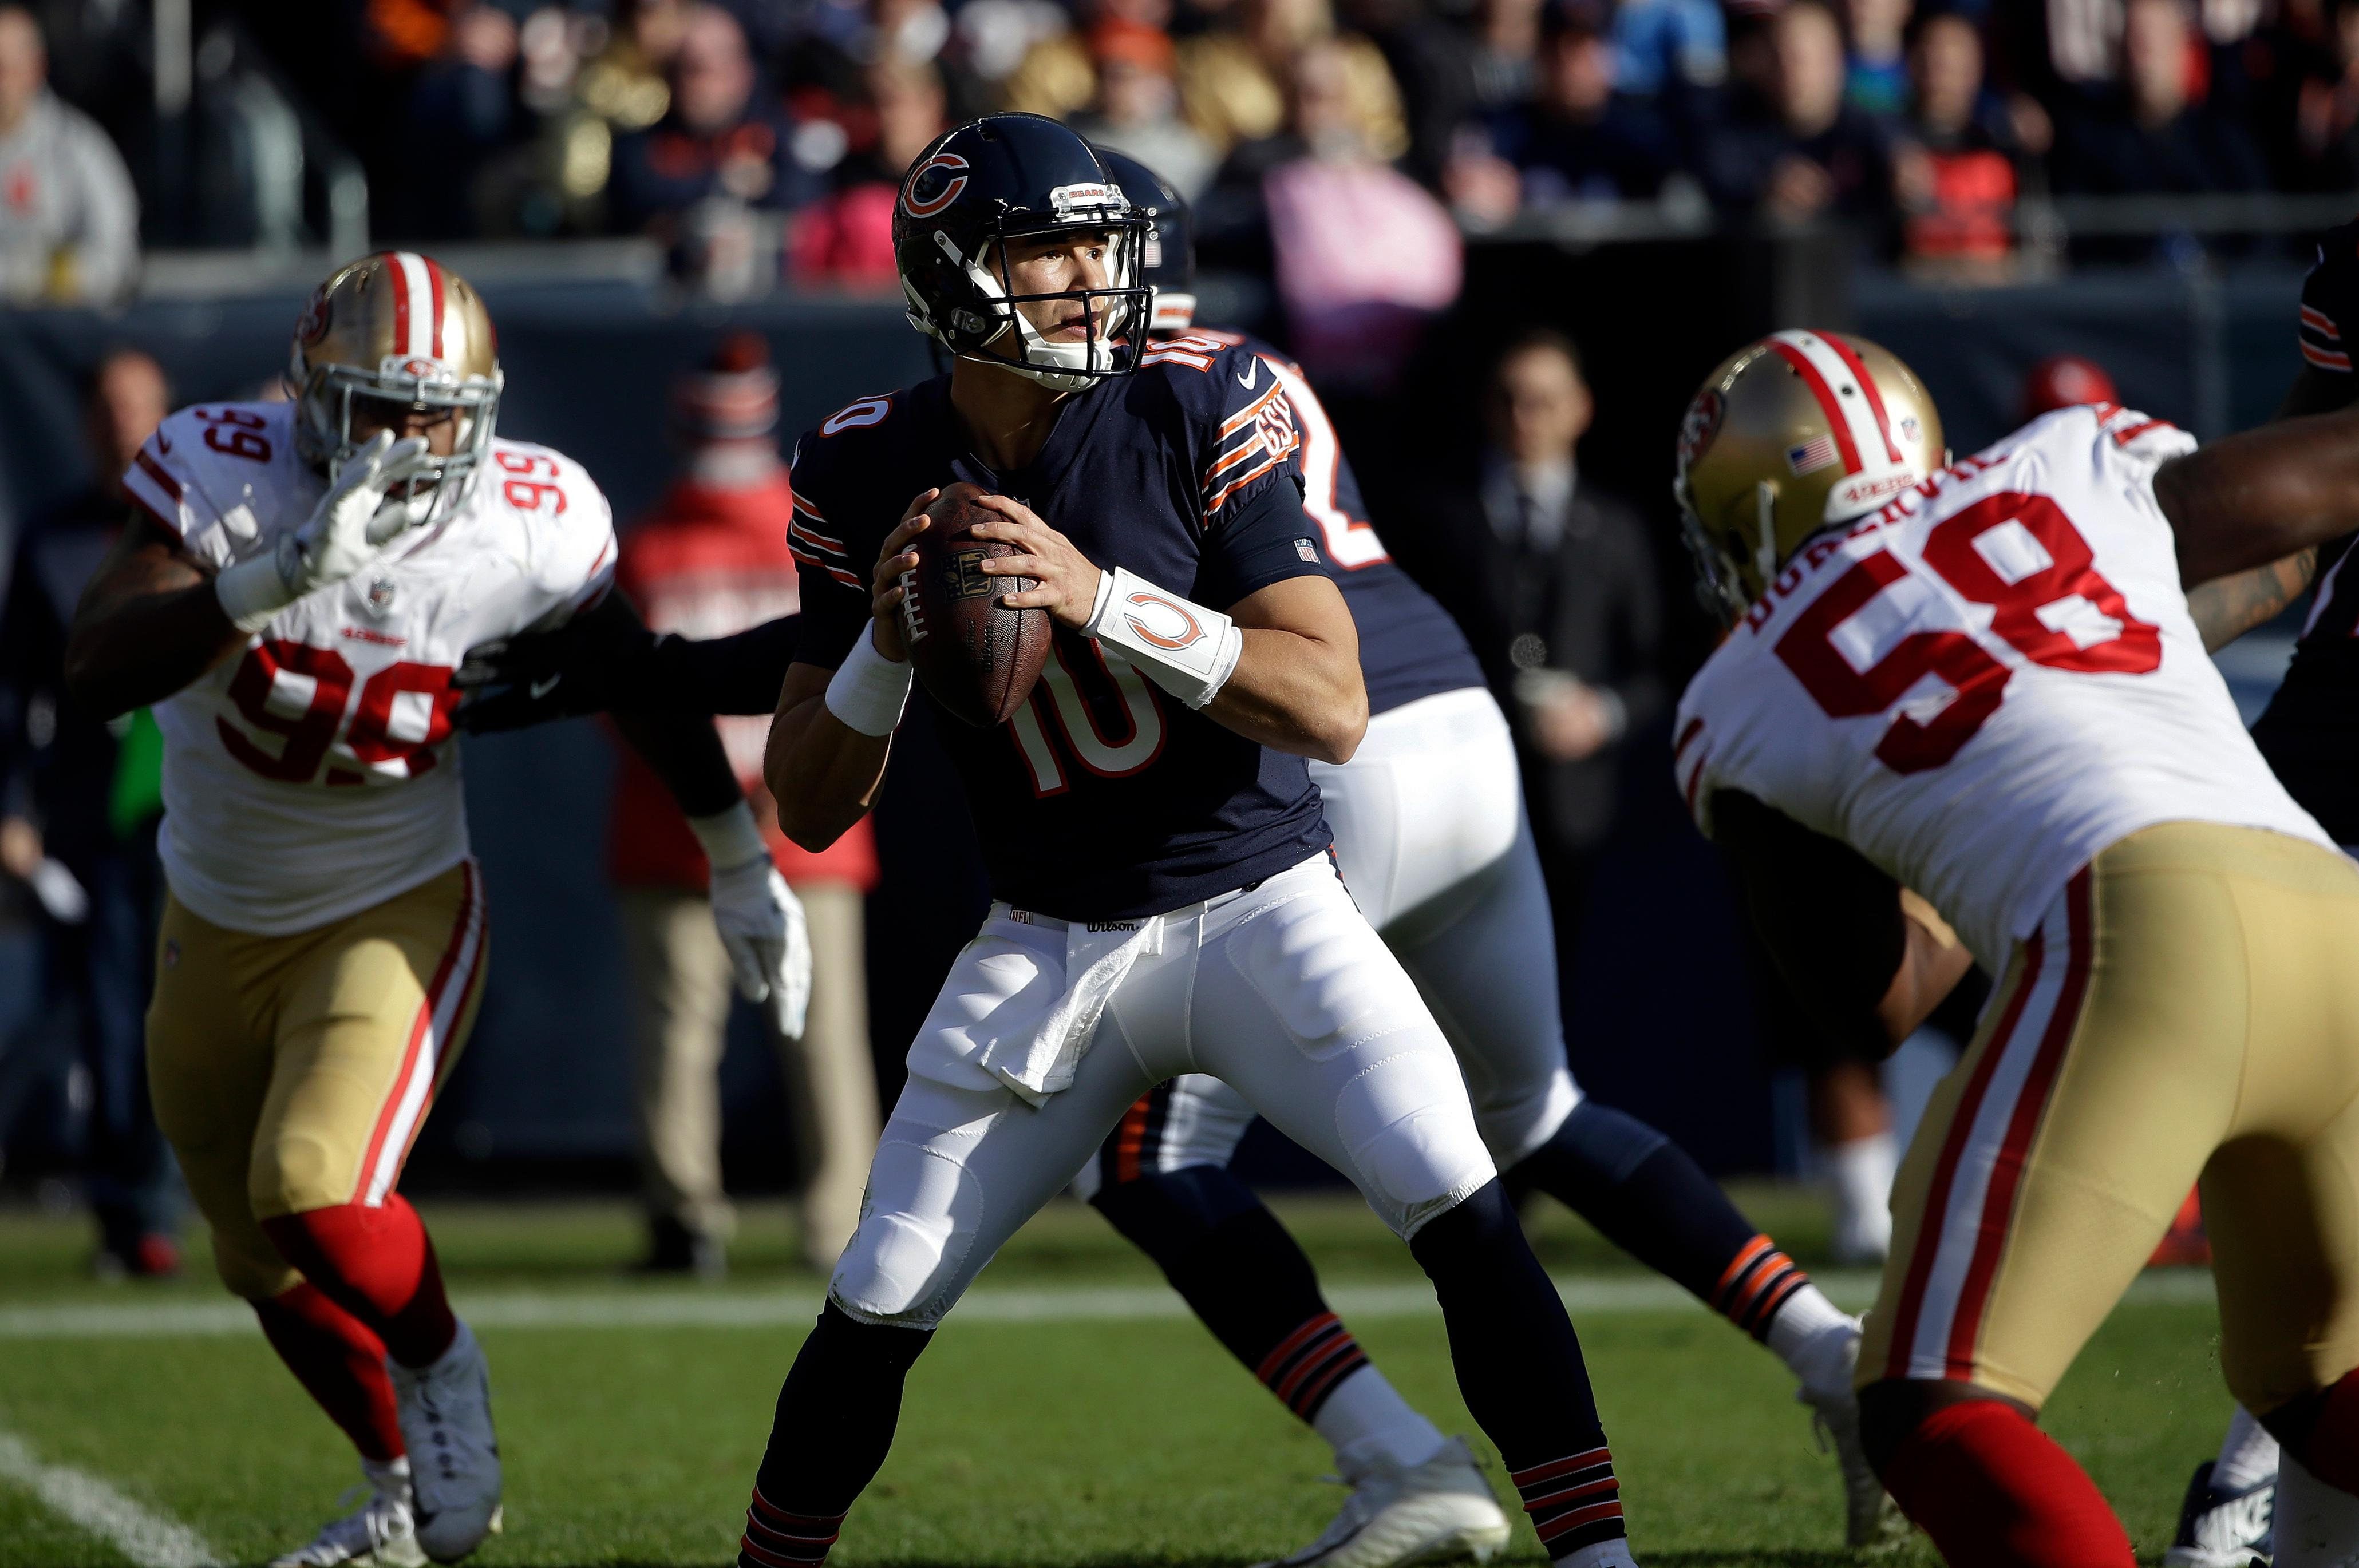 Chicago Bears quarterback Mitchell Trubisky (10) looks for a receiver during the first half of an NFL football game against the San Francisco 49ers, Sunday, Dec. 3, 2017, in Chicago. (AP Photo/Nam Y. Huh)